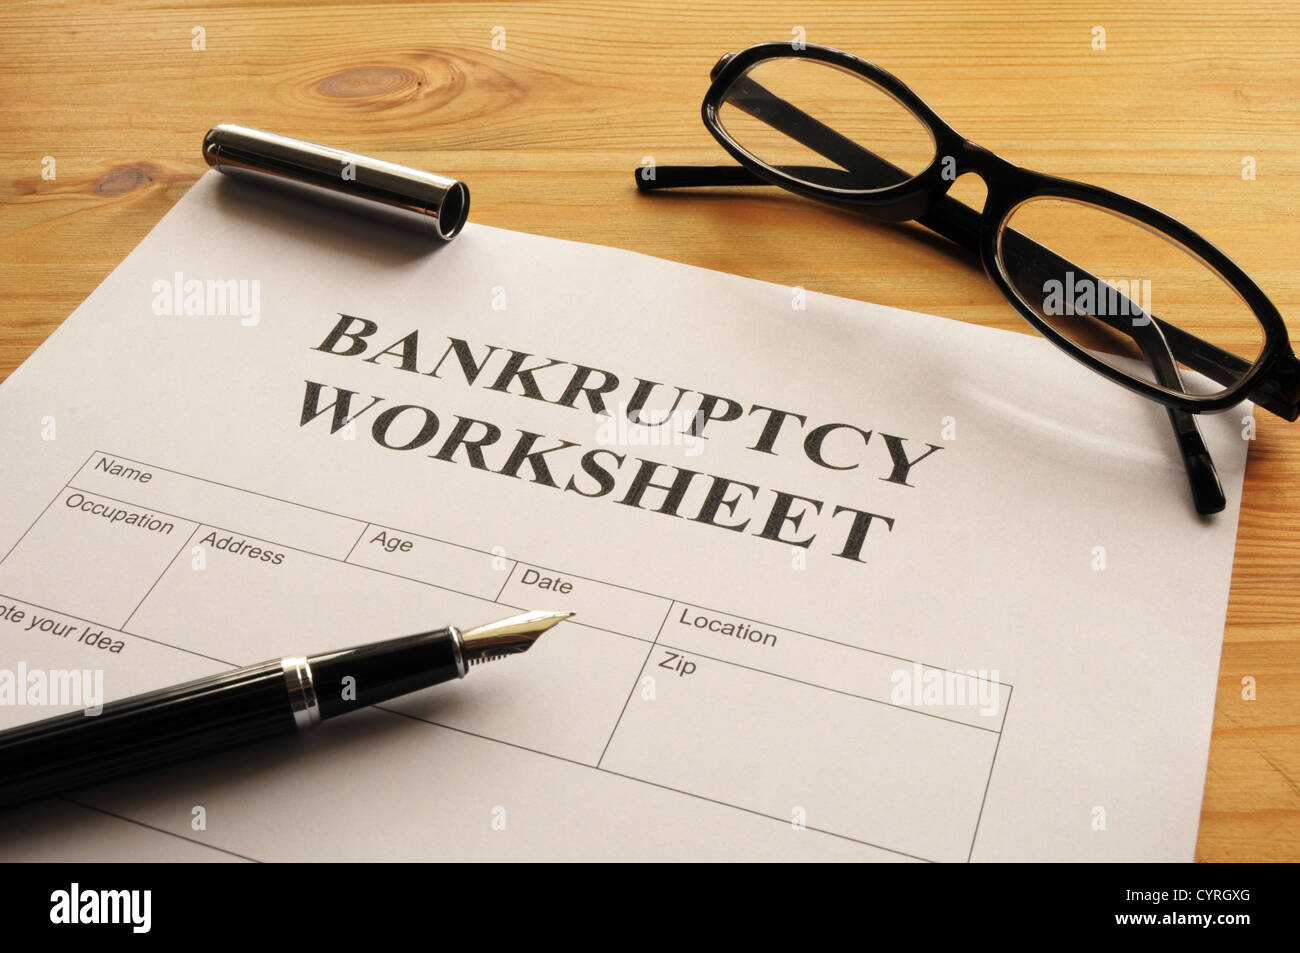 bankruptcy worksheet form or document showing business concept - Stock Image